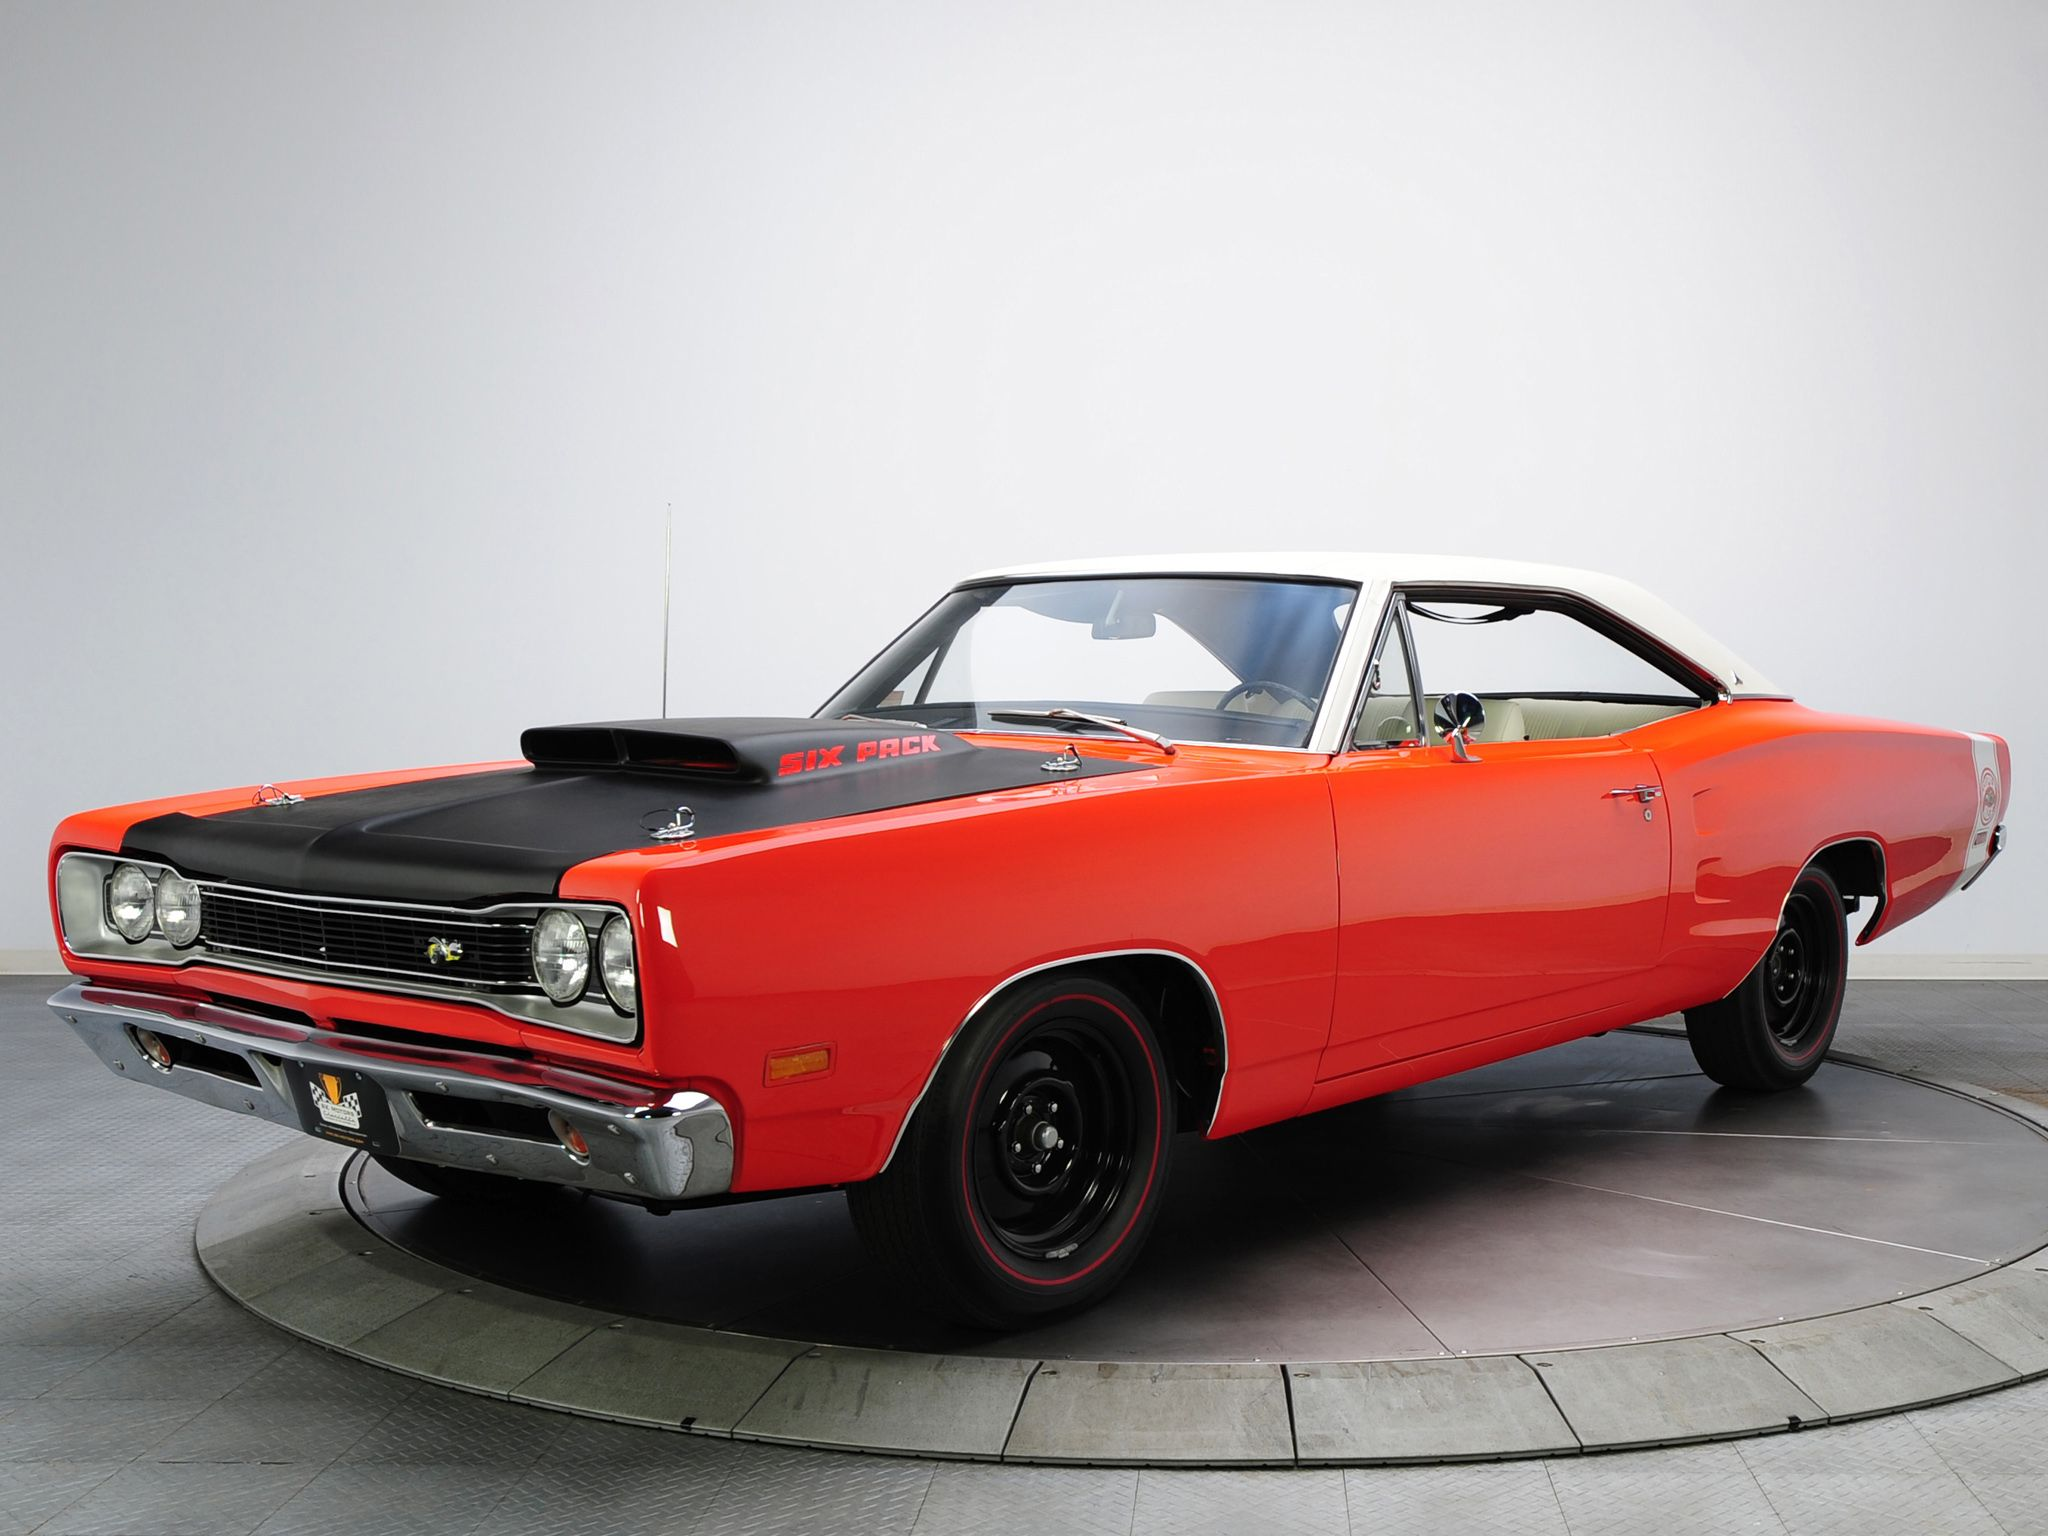 1969 Dodge Coronet Super Bee 440 Six Pack Hardtop Coupe Wm23 Muscle A12 Classic F Wallpaper Background